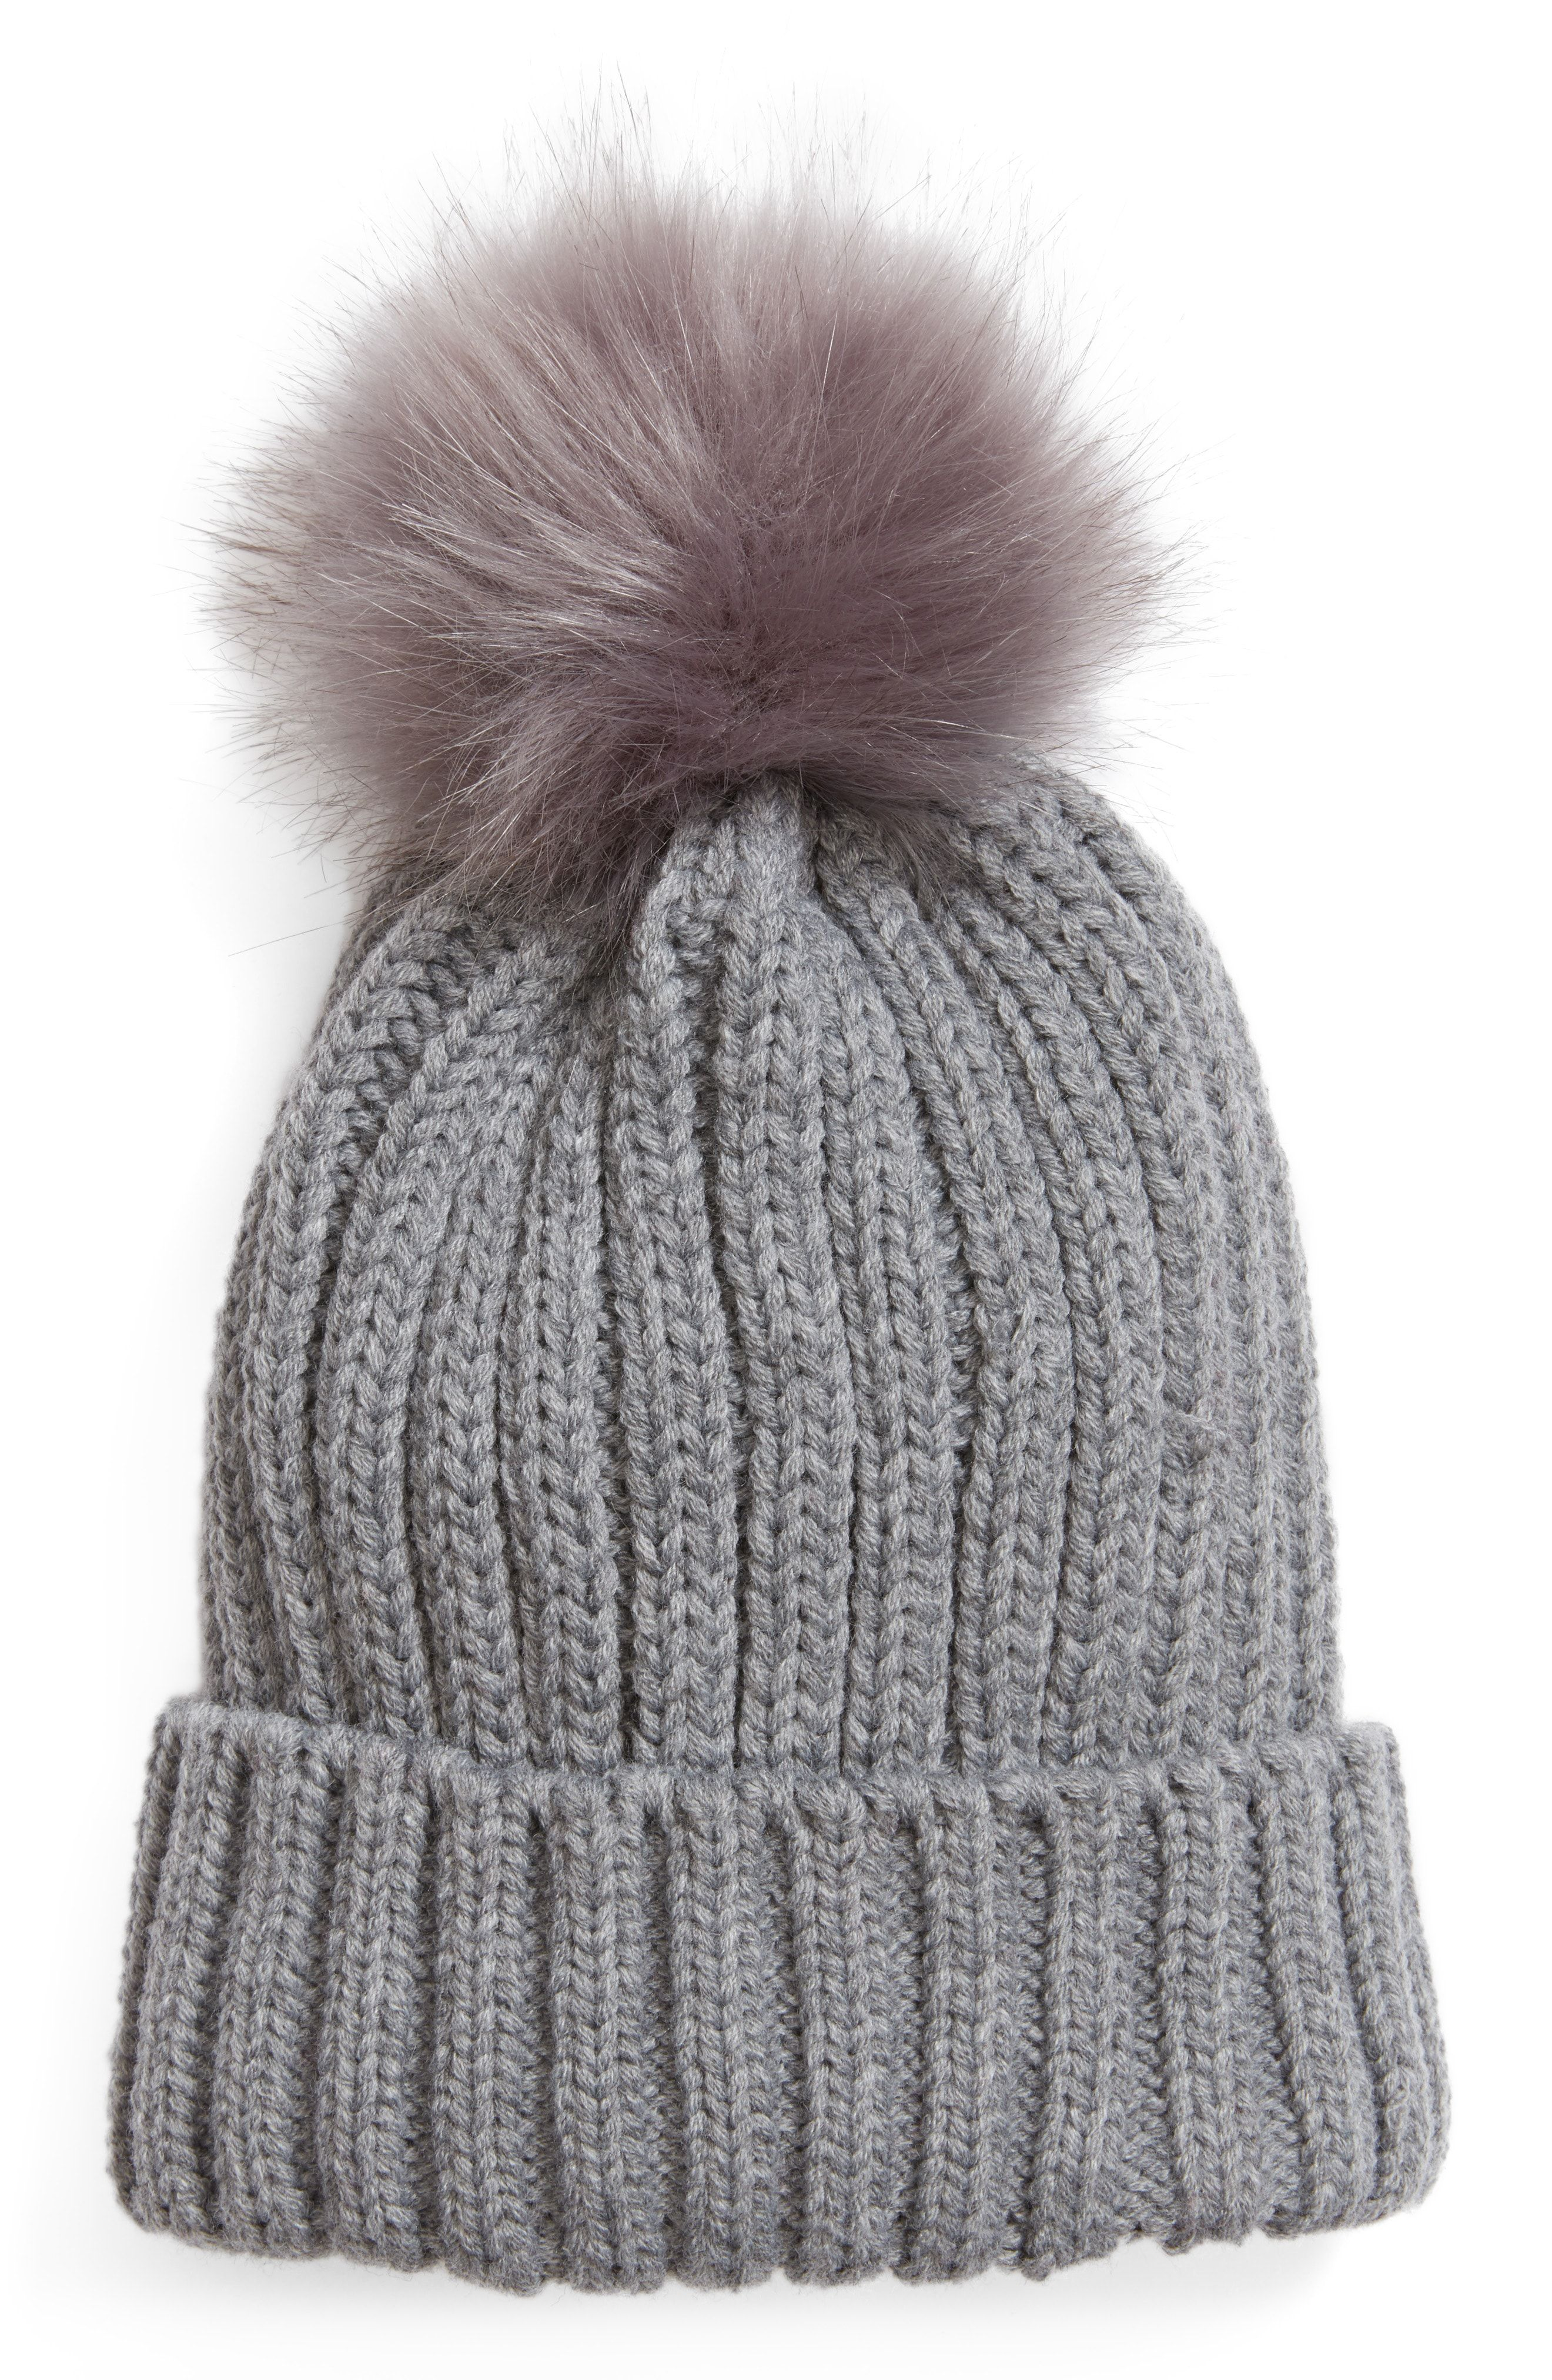 Pom pom beanies knitted for fall-winter recommendations to wear for on every day in 2019